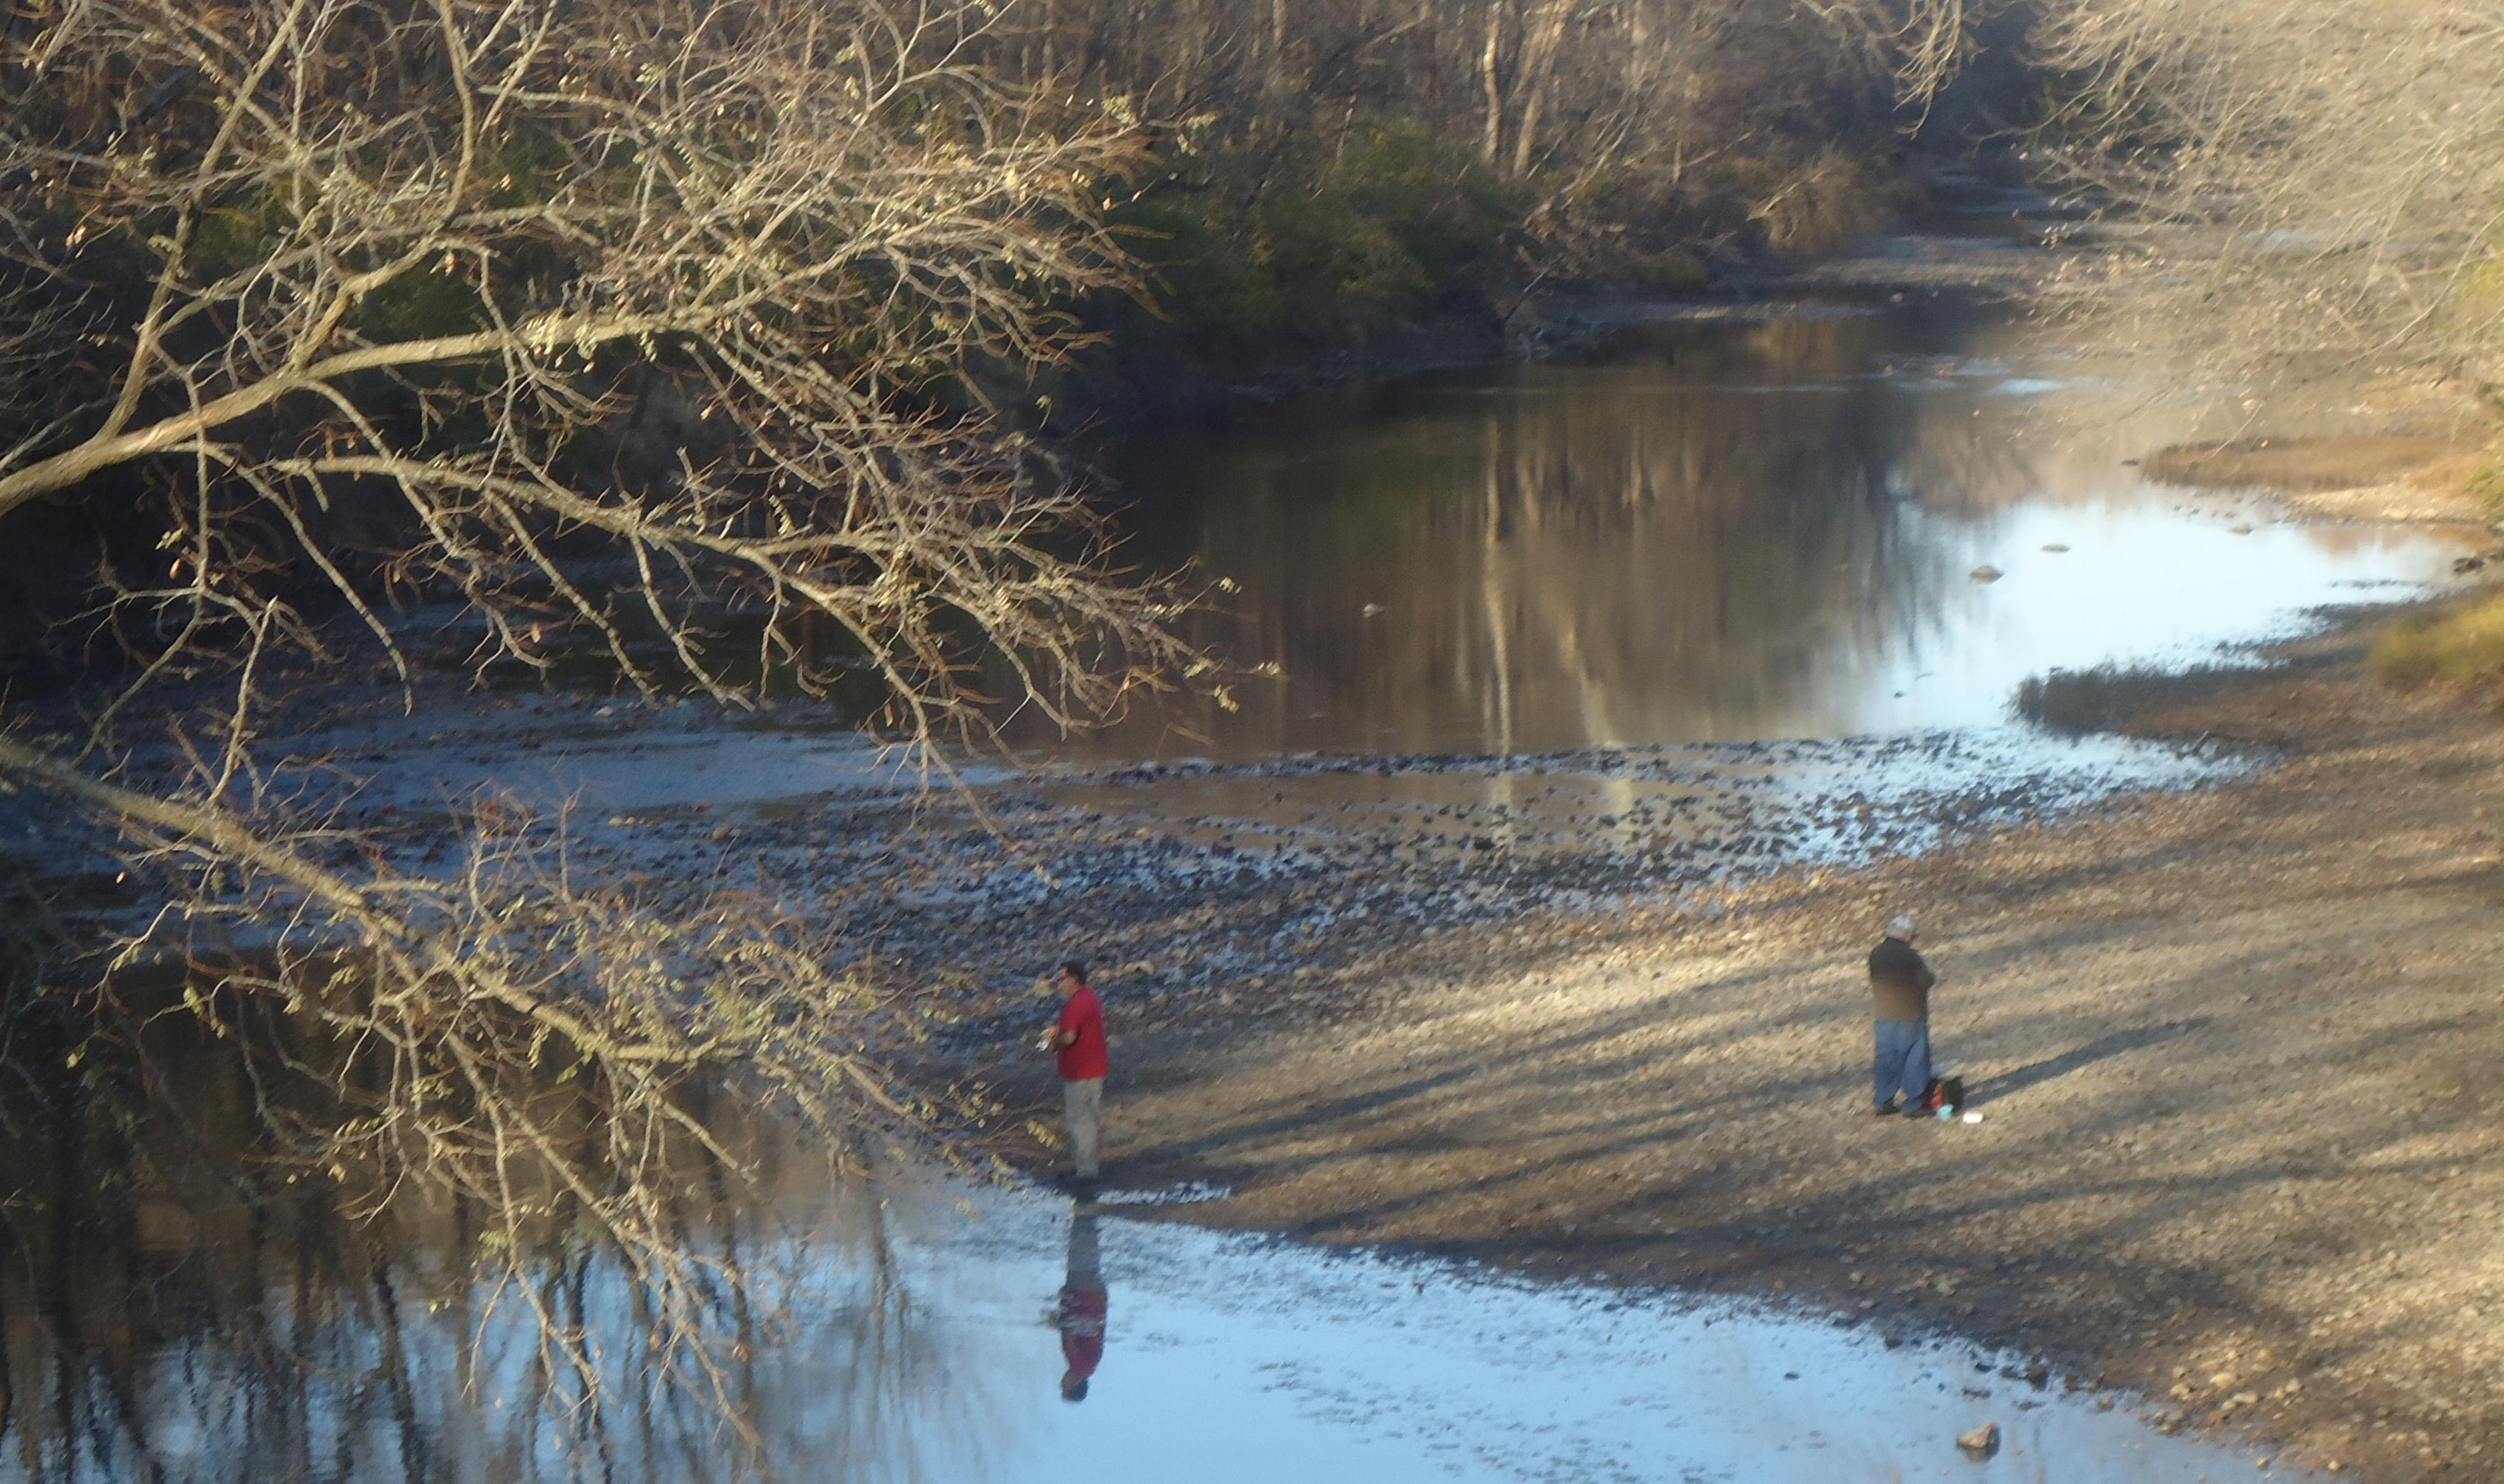 Fisherman on the Middle Fork of the Vermilion River.